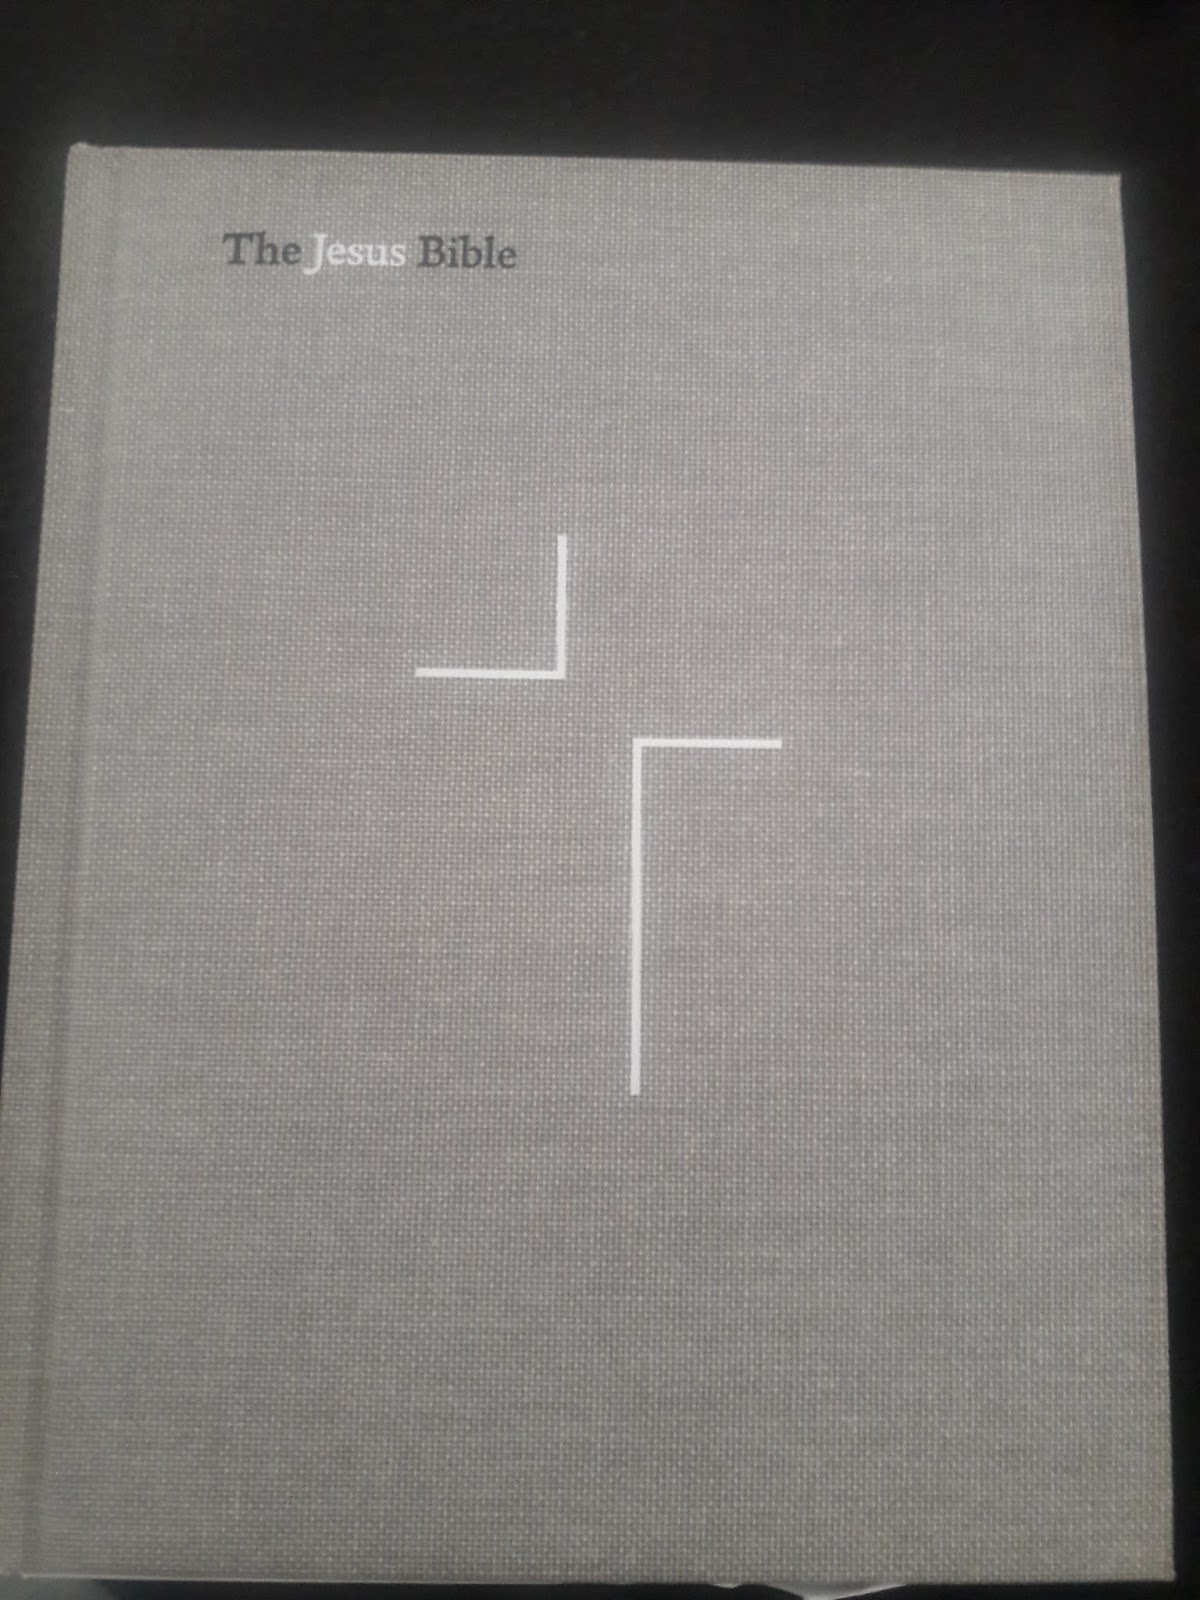 my reviews products i love and much more the jesus bible niv